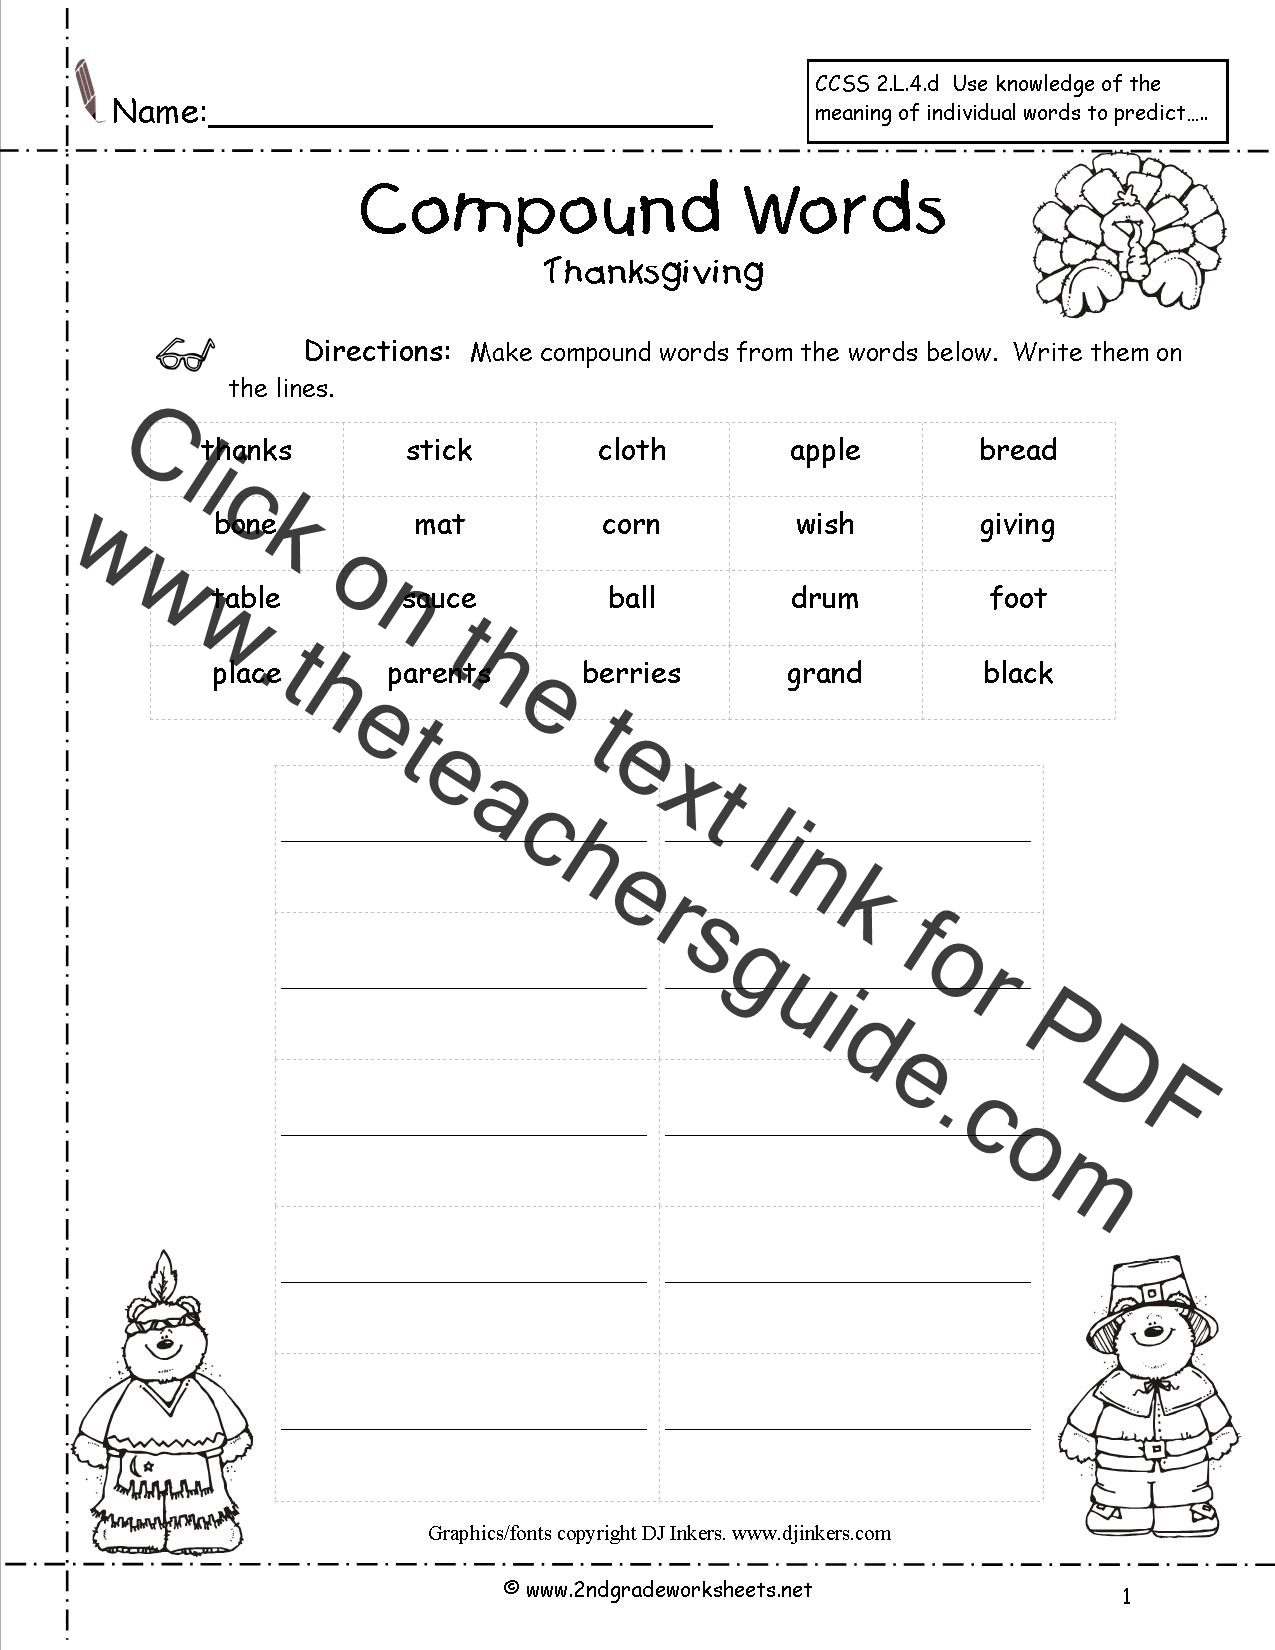 Thanksgiving Printouts and Worksheets – Free Printable Second Grade Worksheets